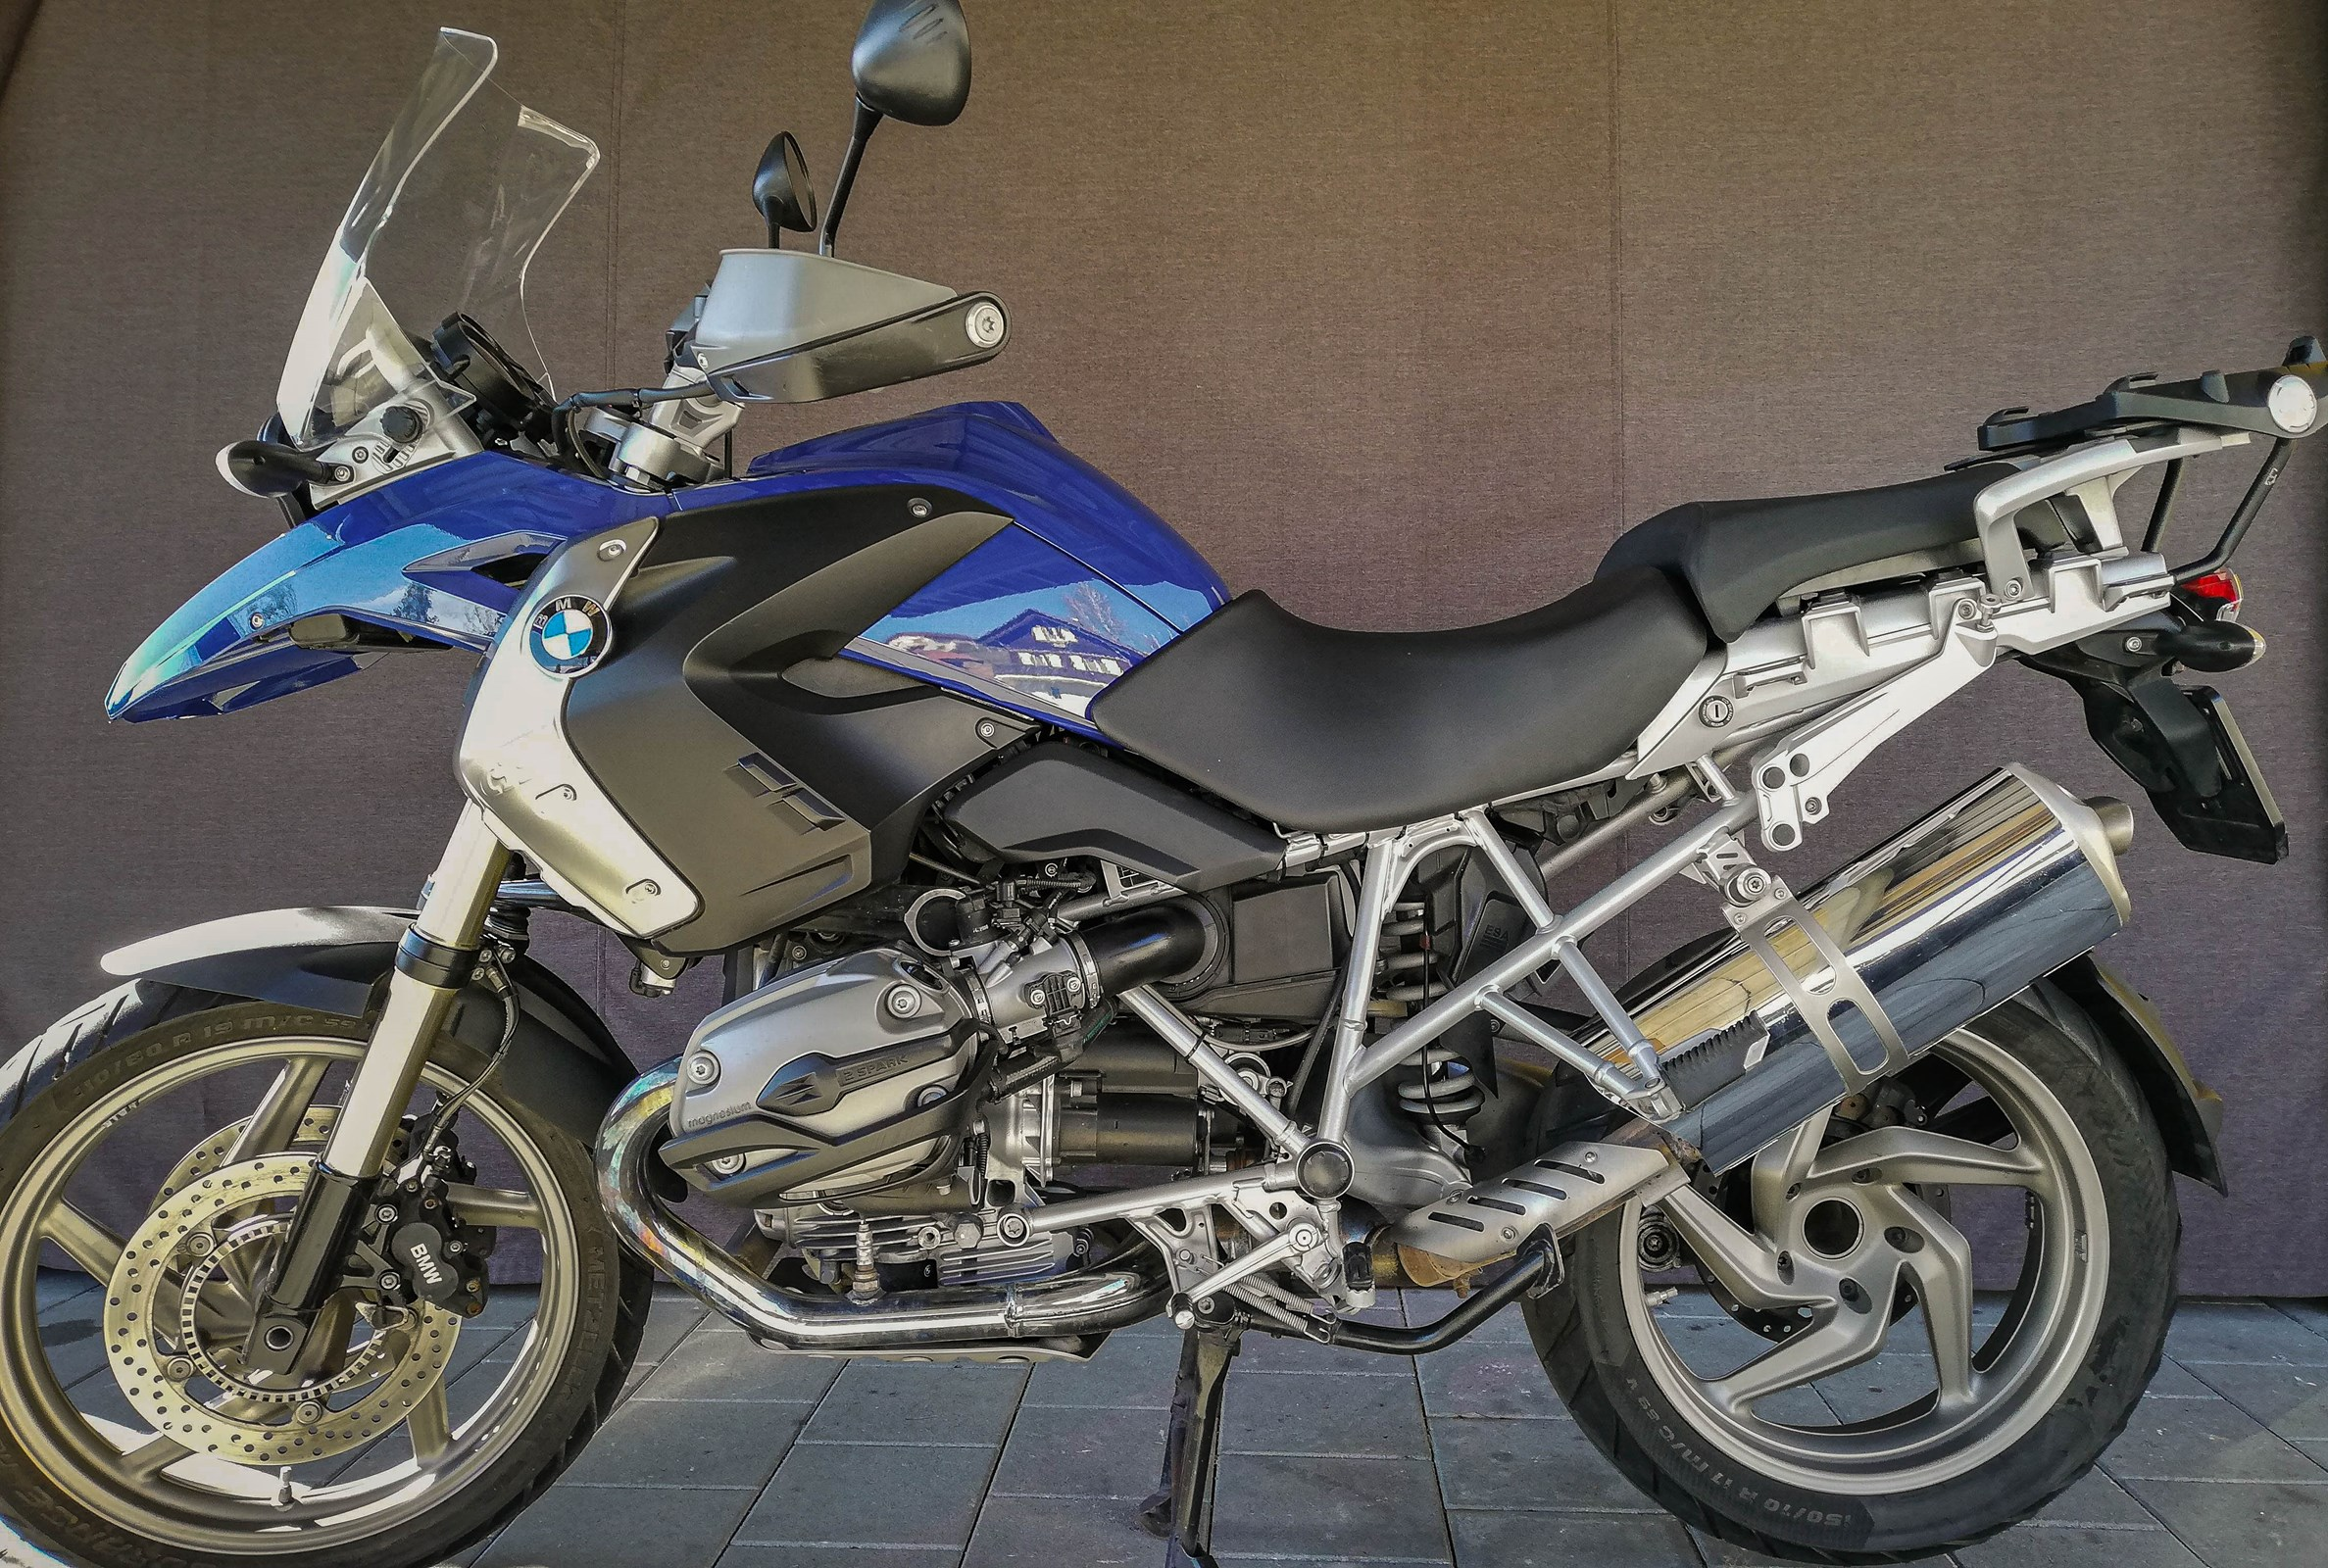 BMW R 1200 GS safety ABS